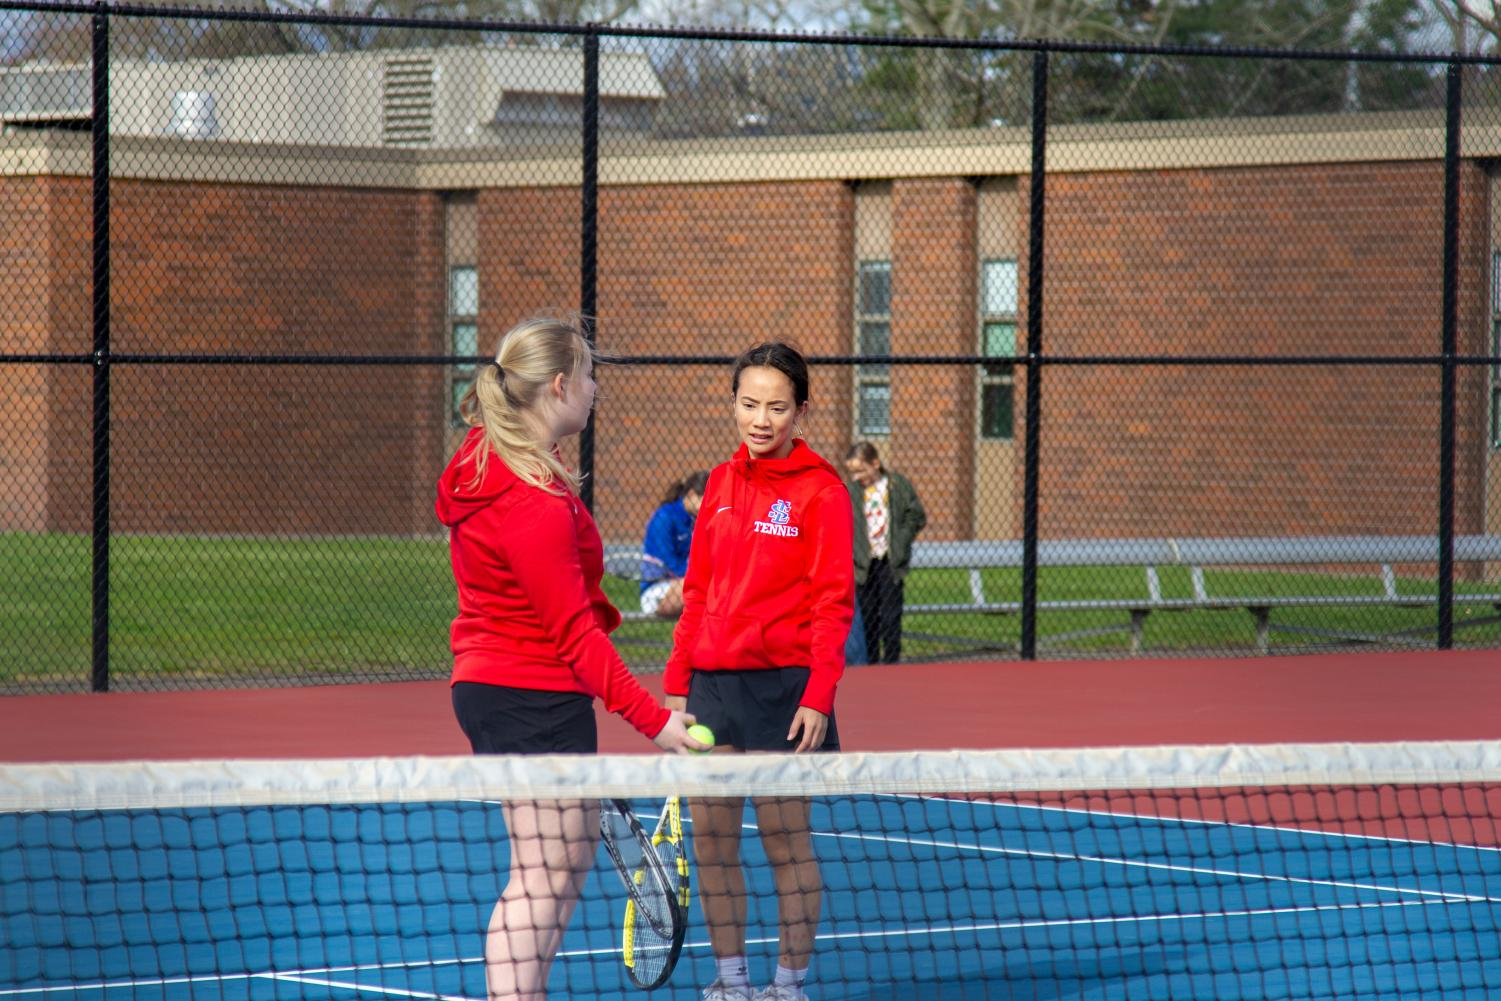 Senior+doubles+partners+Reilly+Nesen+and+Vu+discuss+their+strategy+before+the+next+play.